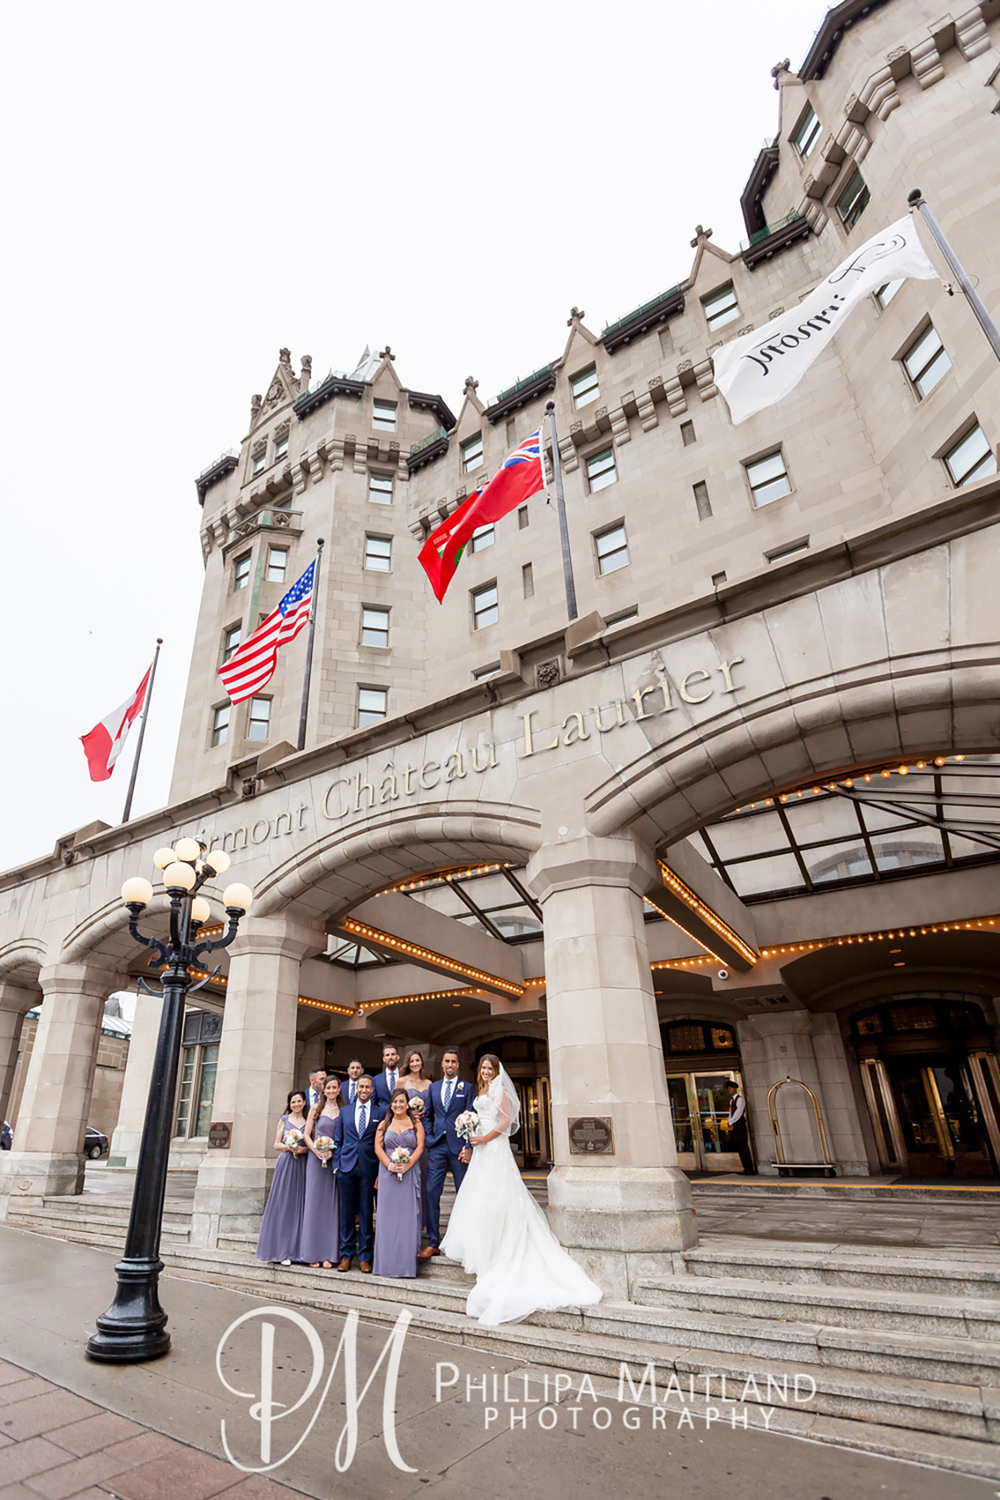 Chateau Laurier Ottawa Wedding 44.jpg